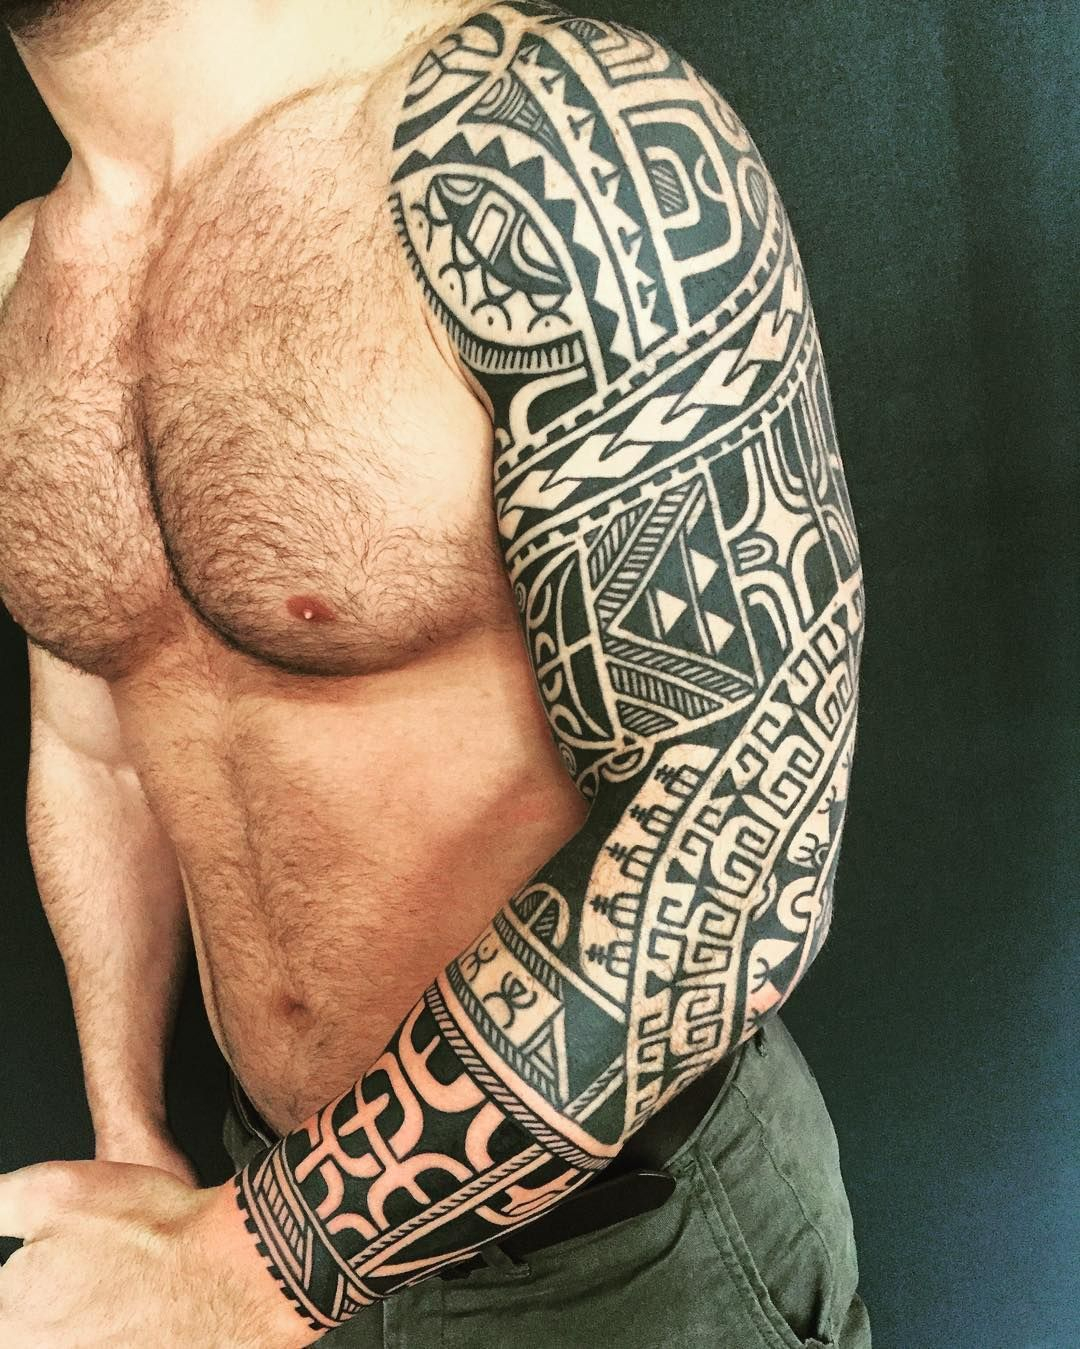 Added To Altins Three Quarter Sleeve Today Polynesiantattoo within dimensions 1080 X 1349